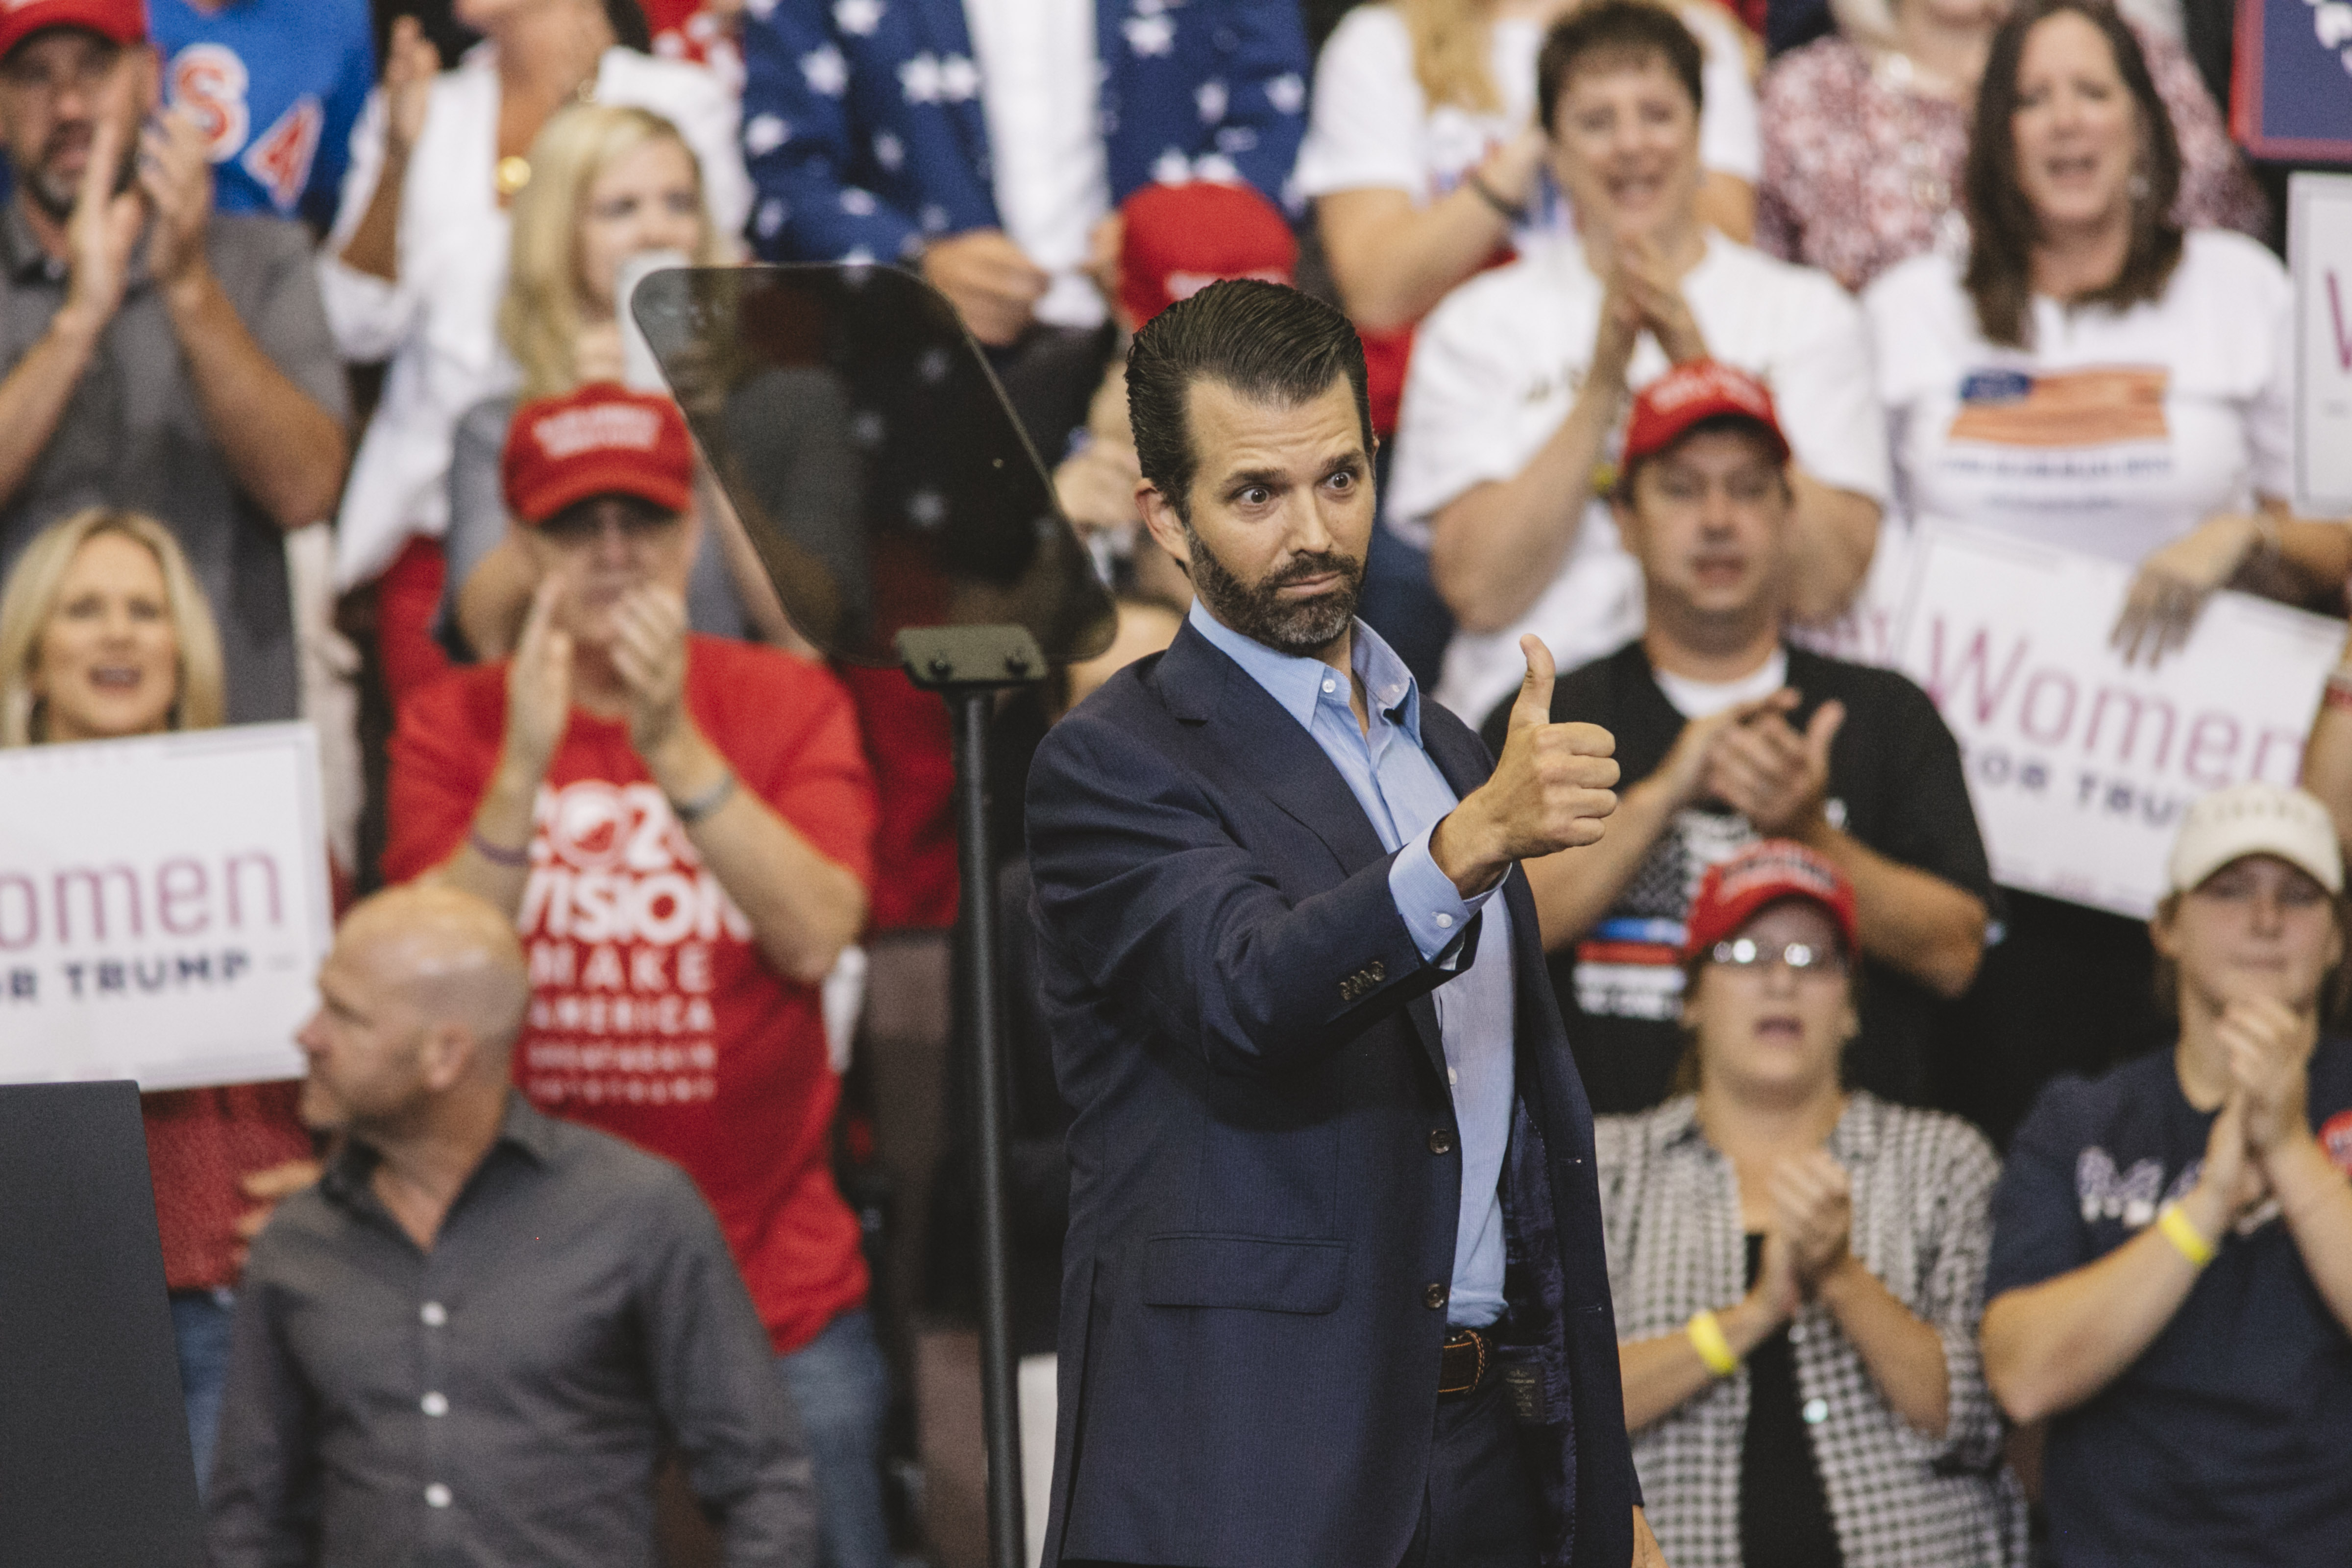 "CINCINNATI, OH - AUGUST 01: Donald Trump Jr. speaks early in the night before his father, U.S. President Donald Trump, at a campaign rally at U.S. Bank Arena on August 1, 2019 in Cincinnati, Ohio. The president was critical of his Democratic rivals, condemning what he called ""wasted money"" that has contributed to blight in inner cities run by Democrats, according to published reports. (Photo by Andrew Spear/Getty Images)"